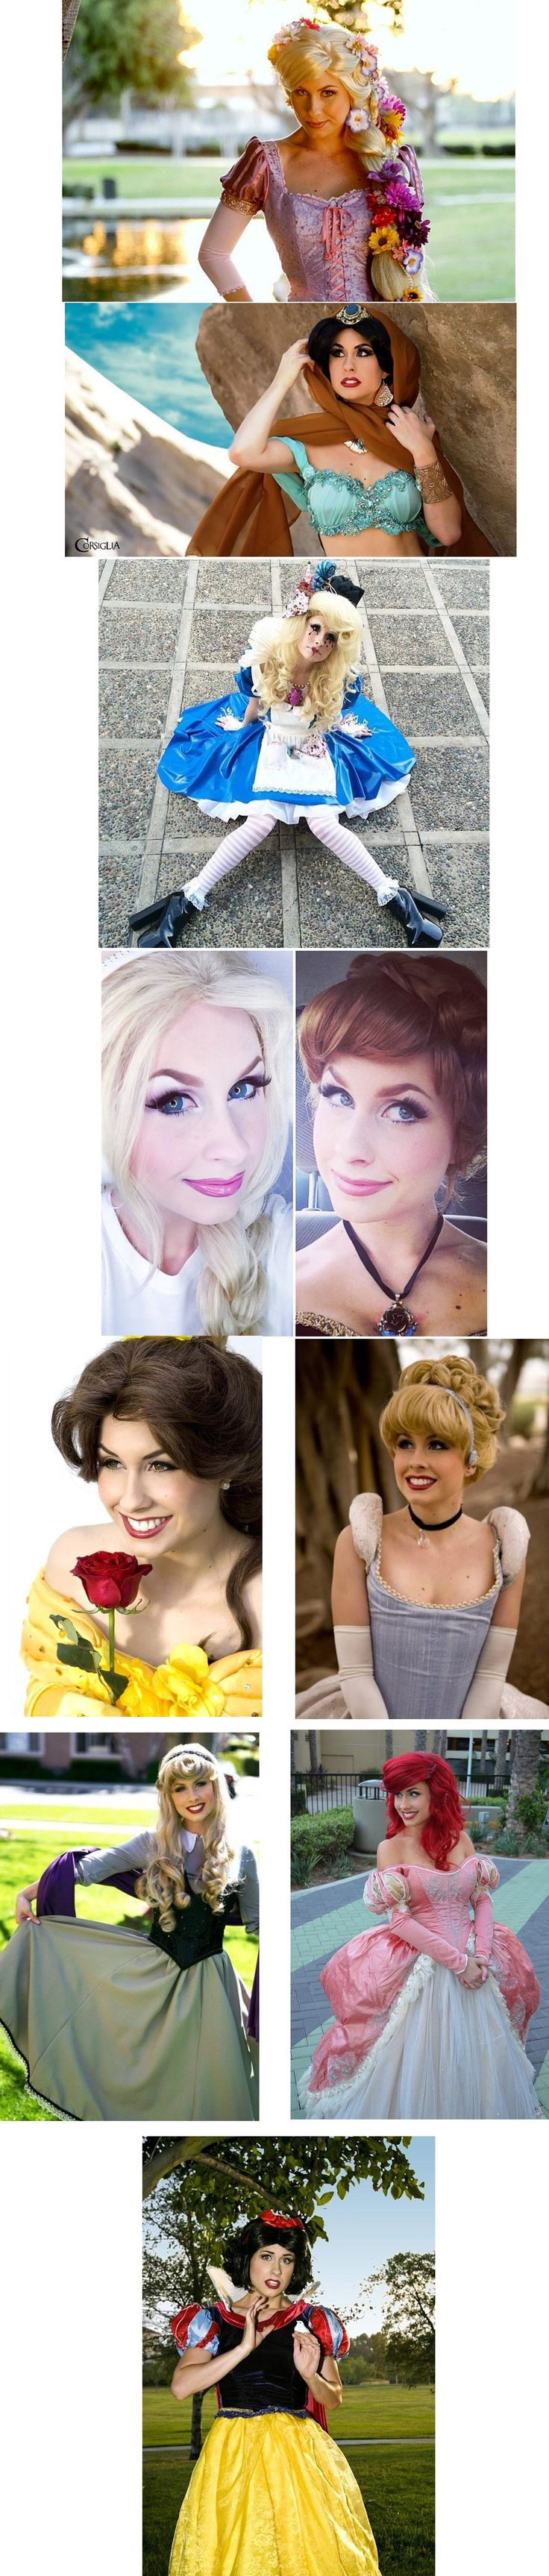 Rapunzel, Jasmine, Alice, Elsa & Anna, Belle, Cinderella, Aurora, Ariel, and Snow White | All Characters Cosplayed by Traci Hines